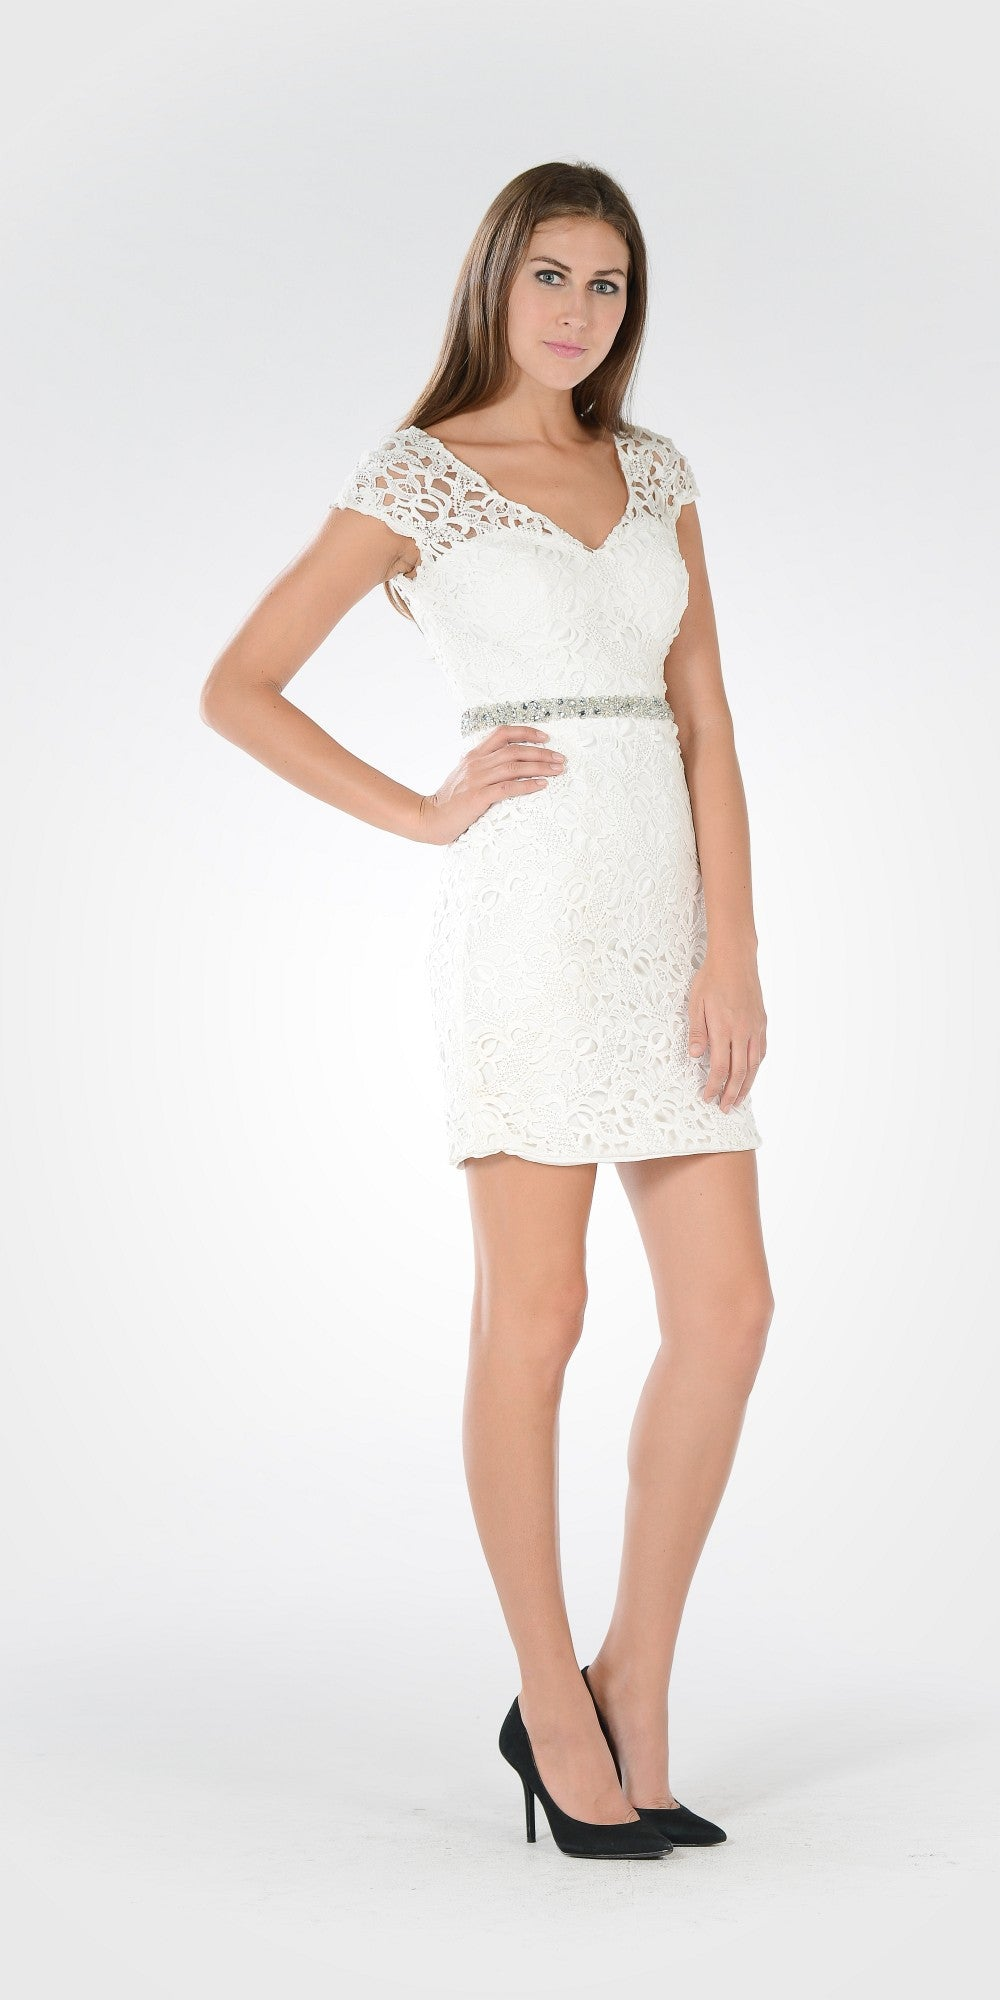 Lace Bodycon Cap Sleeves Embellished Waist Cocktail Dress Off White